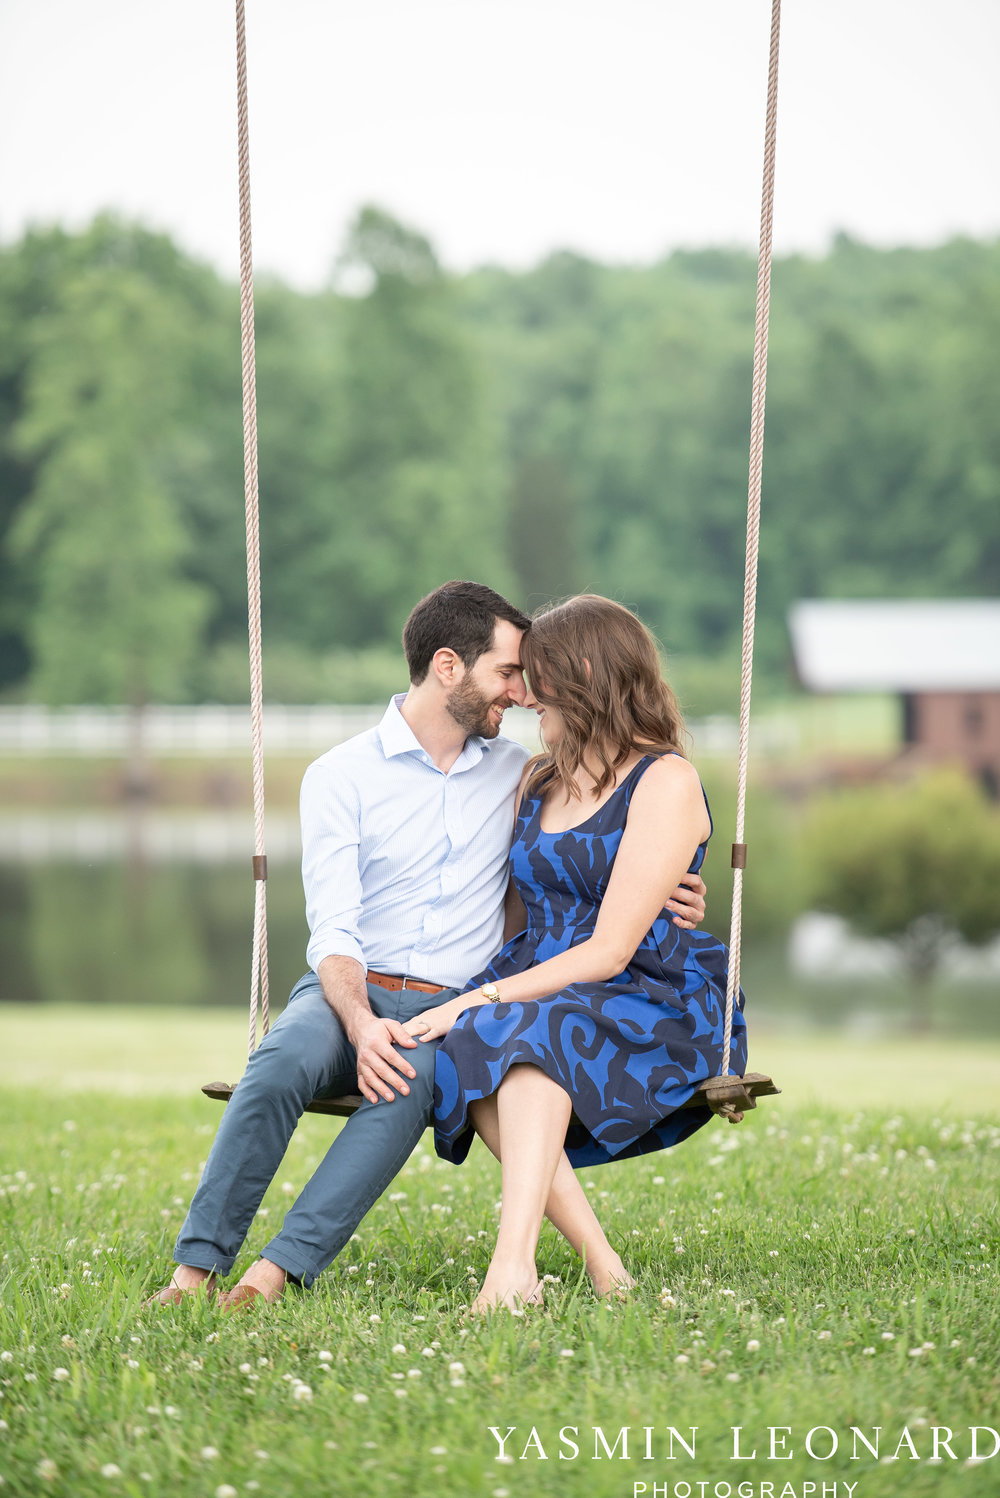 Adaumont Farm - Adaumont Farm Engagement Session - Adaumont Farm Weddings - NC Weddings - Engagement Session - ESession Ideas - Dressy Engagement Session - How to Engagement Session - How to Wedding-8.jpg